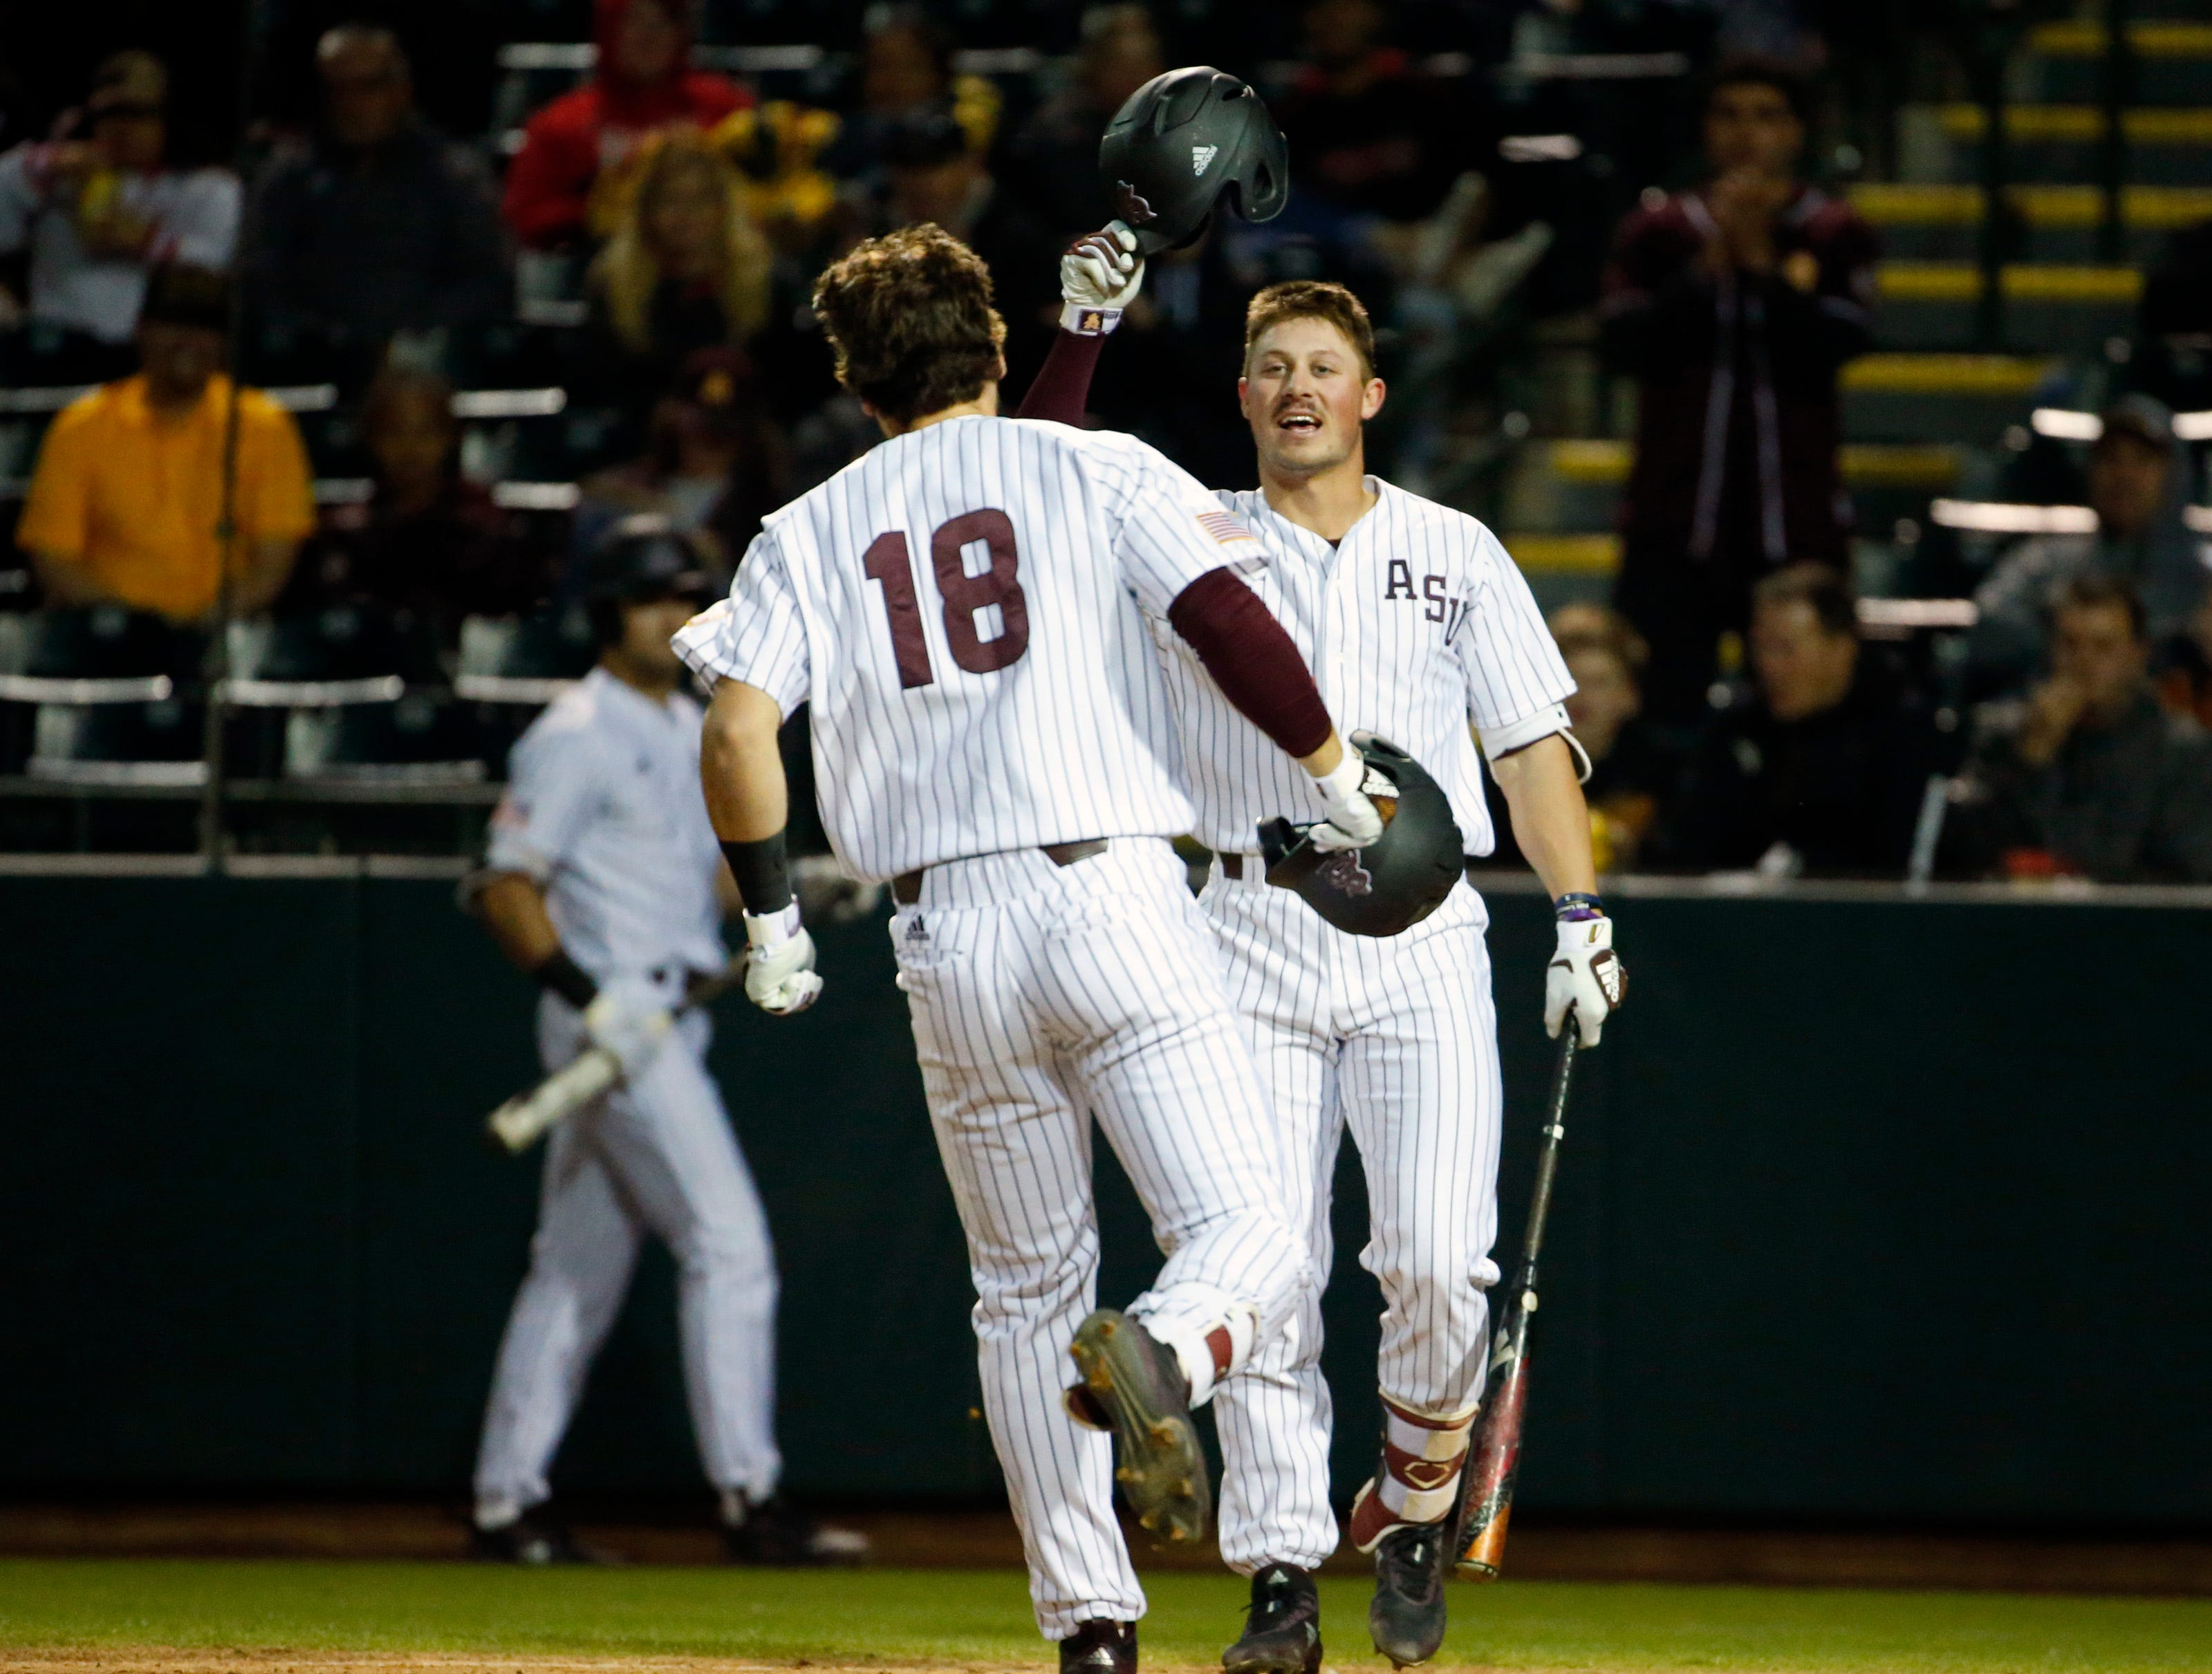 ASU left fielder Trevor Hauver (18) celebrates his homer with teammate first baseman Spencer Torkelson (20) during a baseball game against New Mexico at Phoenix Municipal Stadium on March 13, 2019.